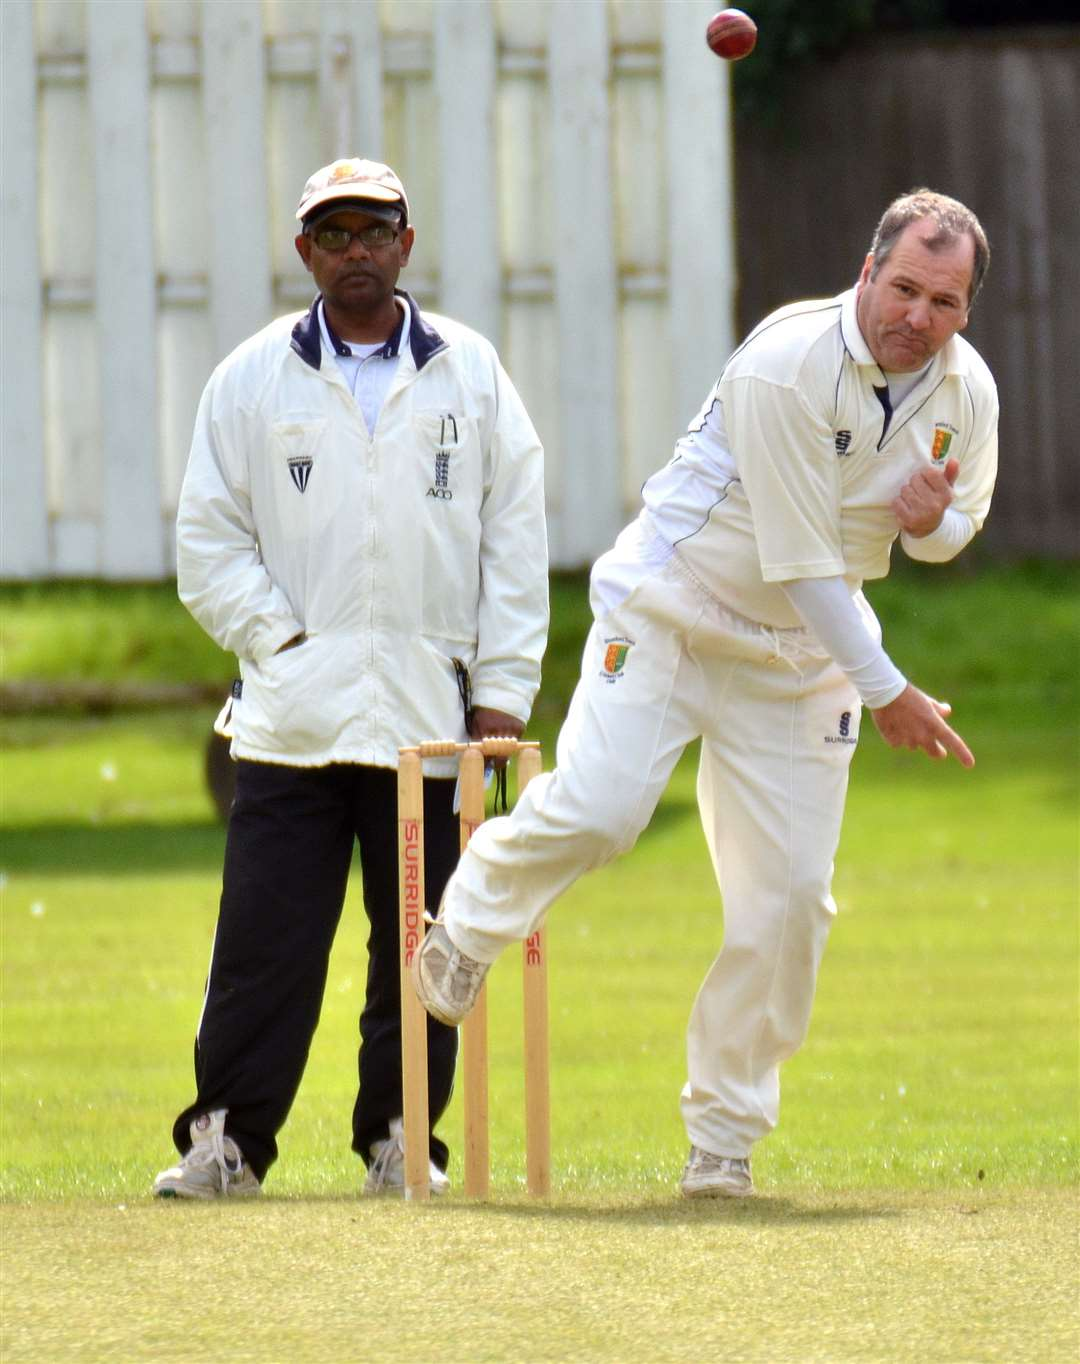 Chris Birch took six wickets for Stamford 2nds on Saturday. (11288479)